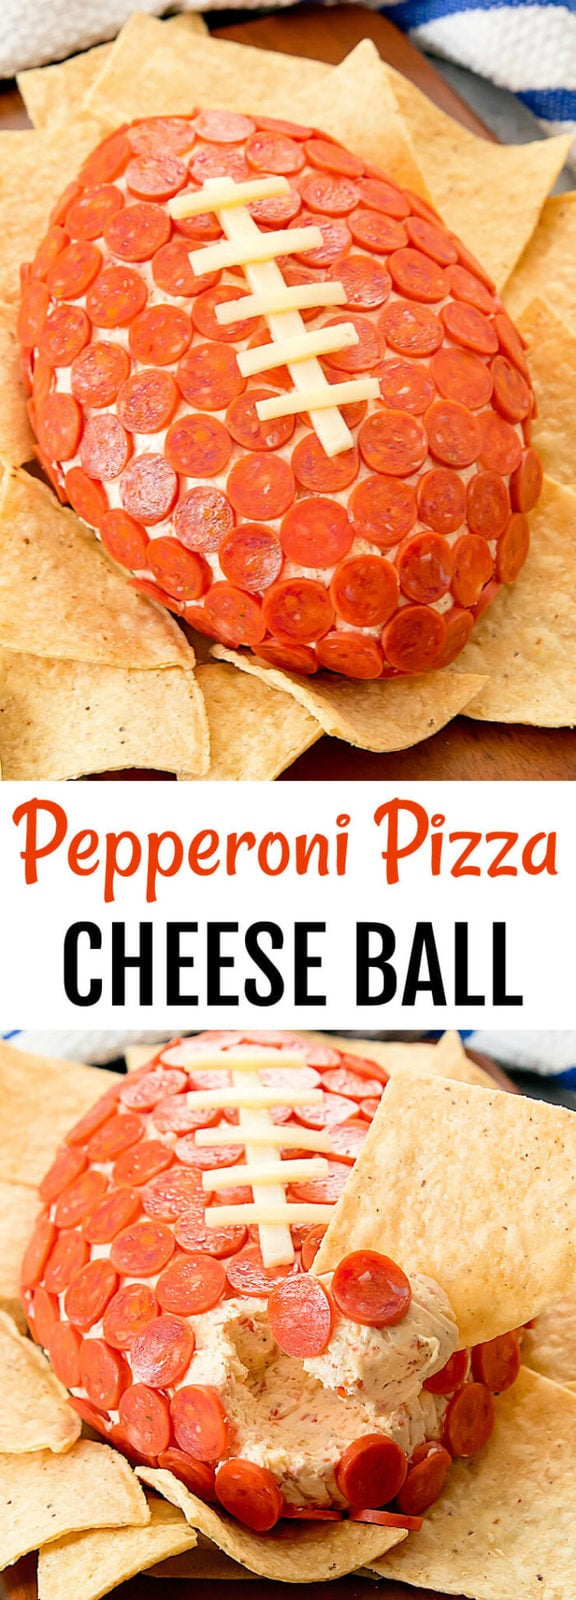 Pepperoni Pizza Cheese Ball Dip